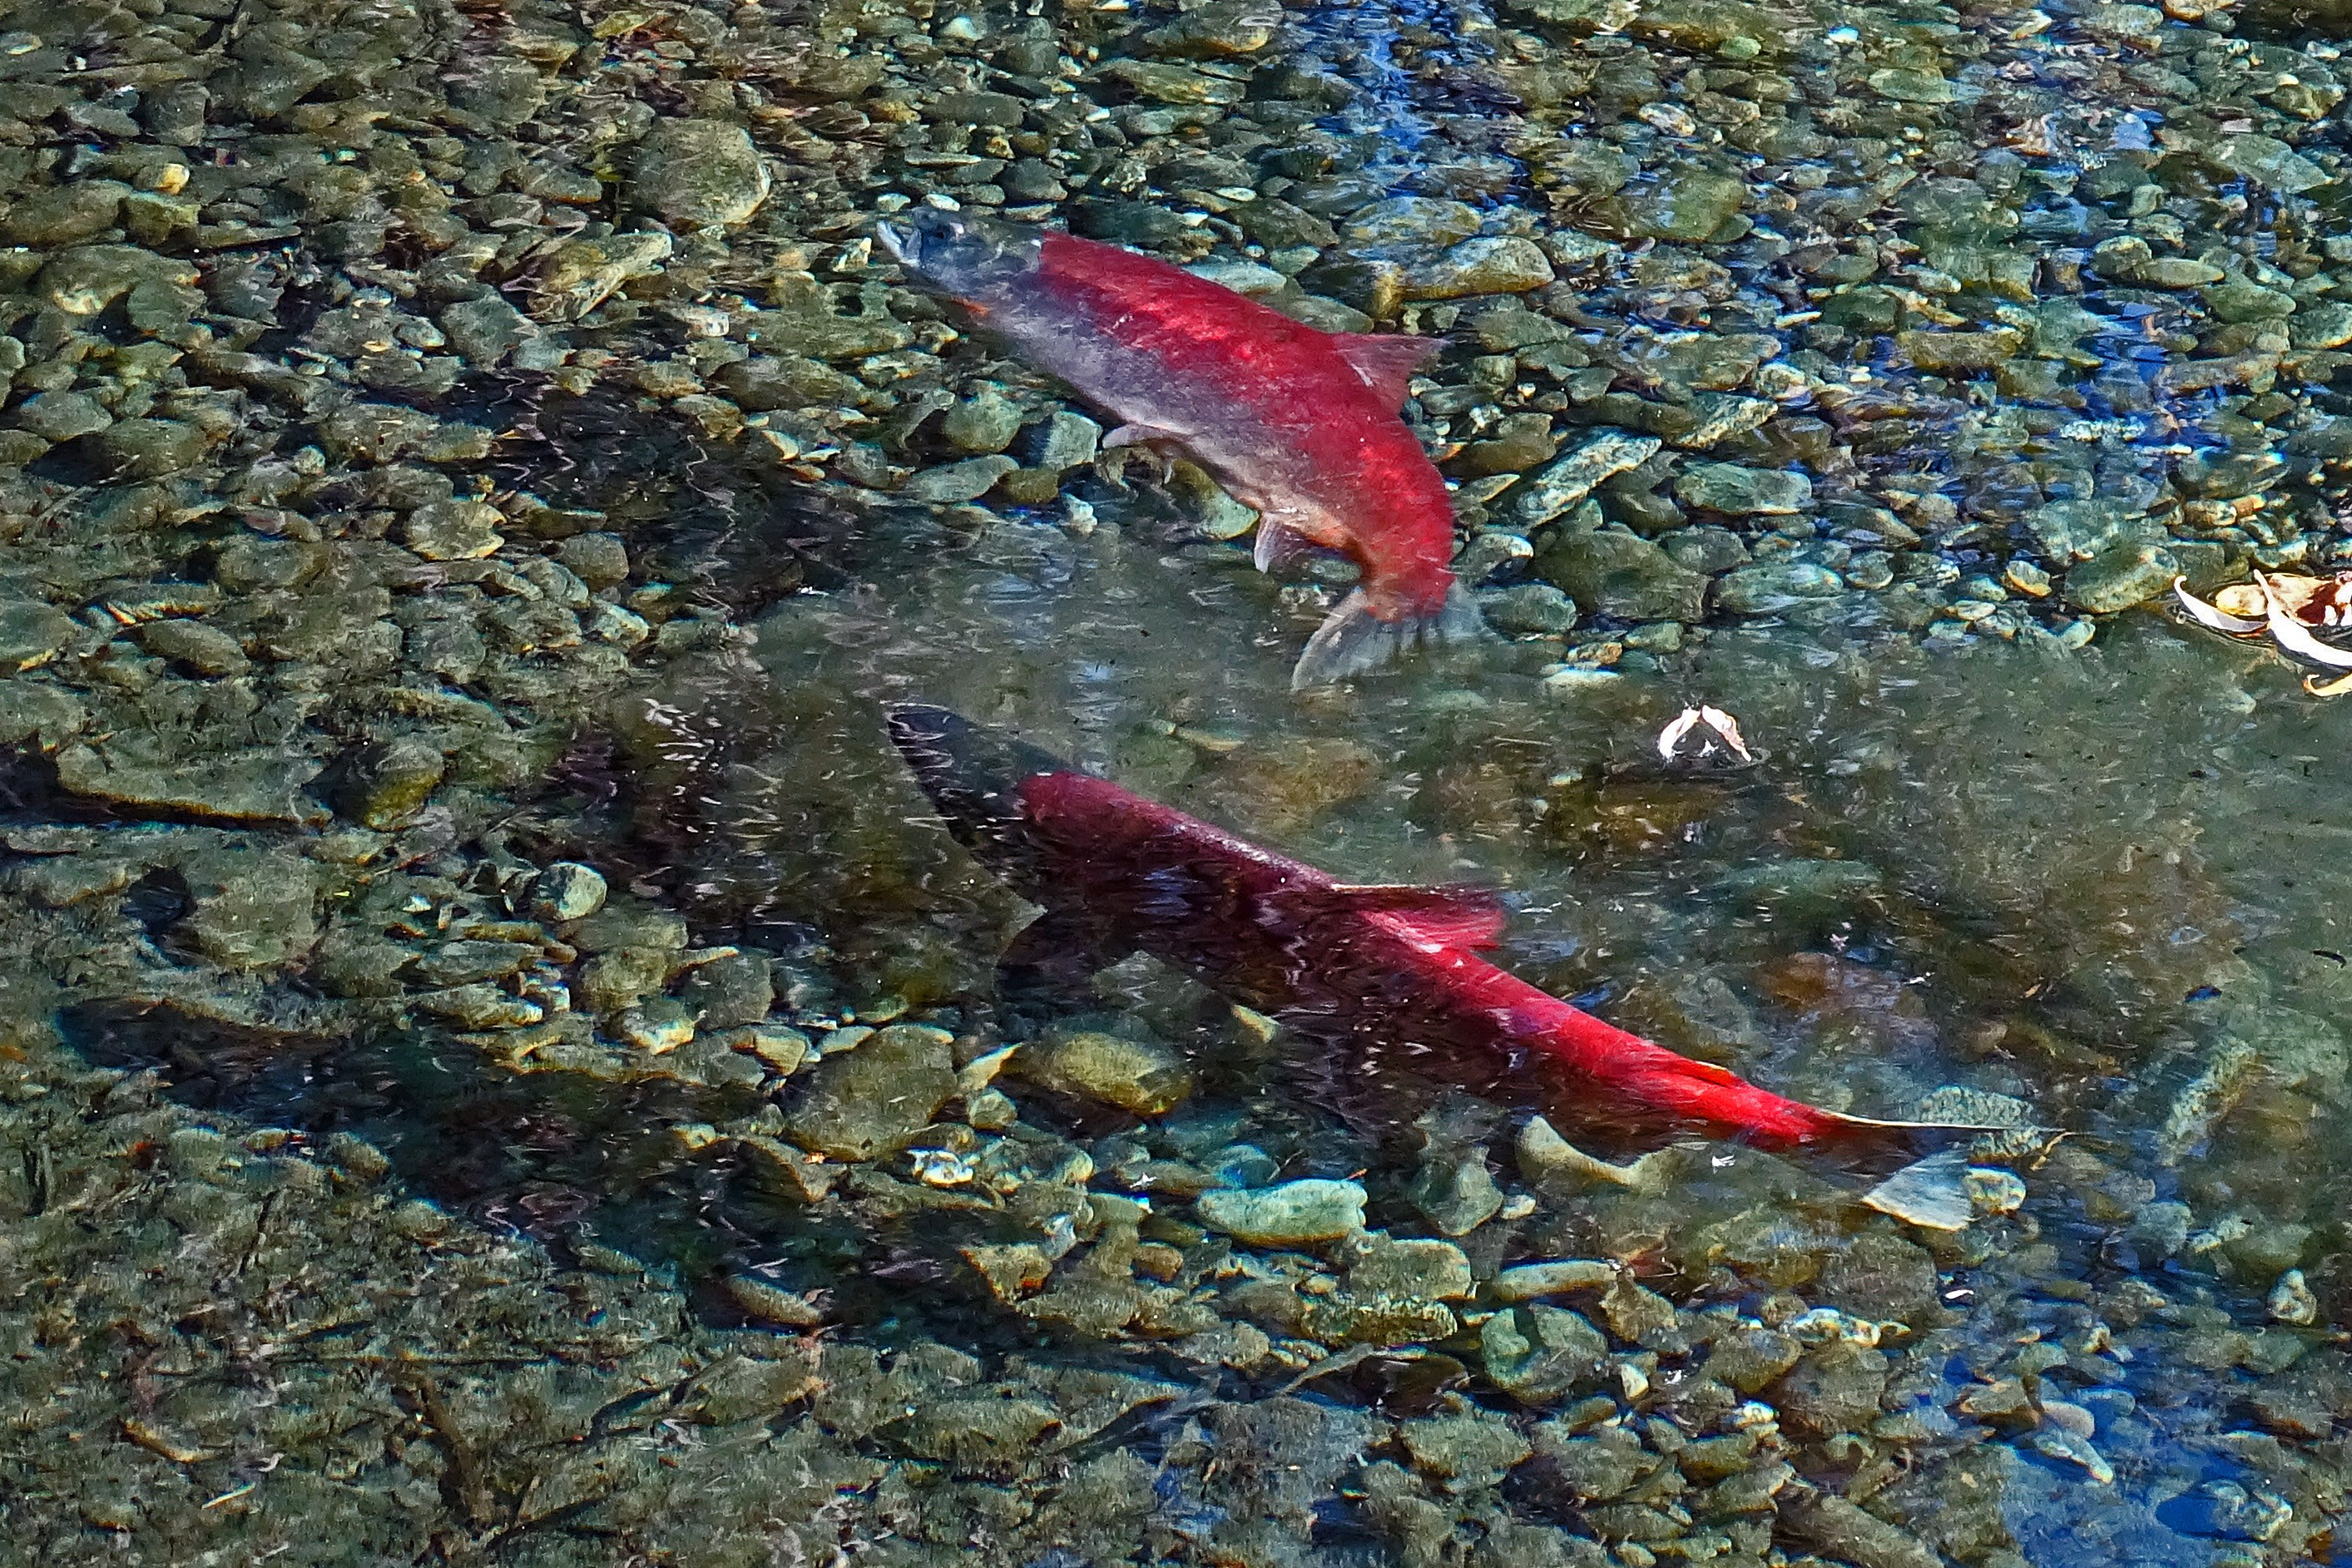 Female salmon making redd (nest)